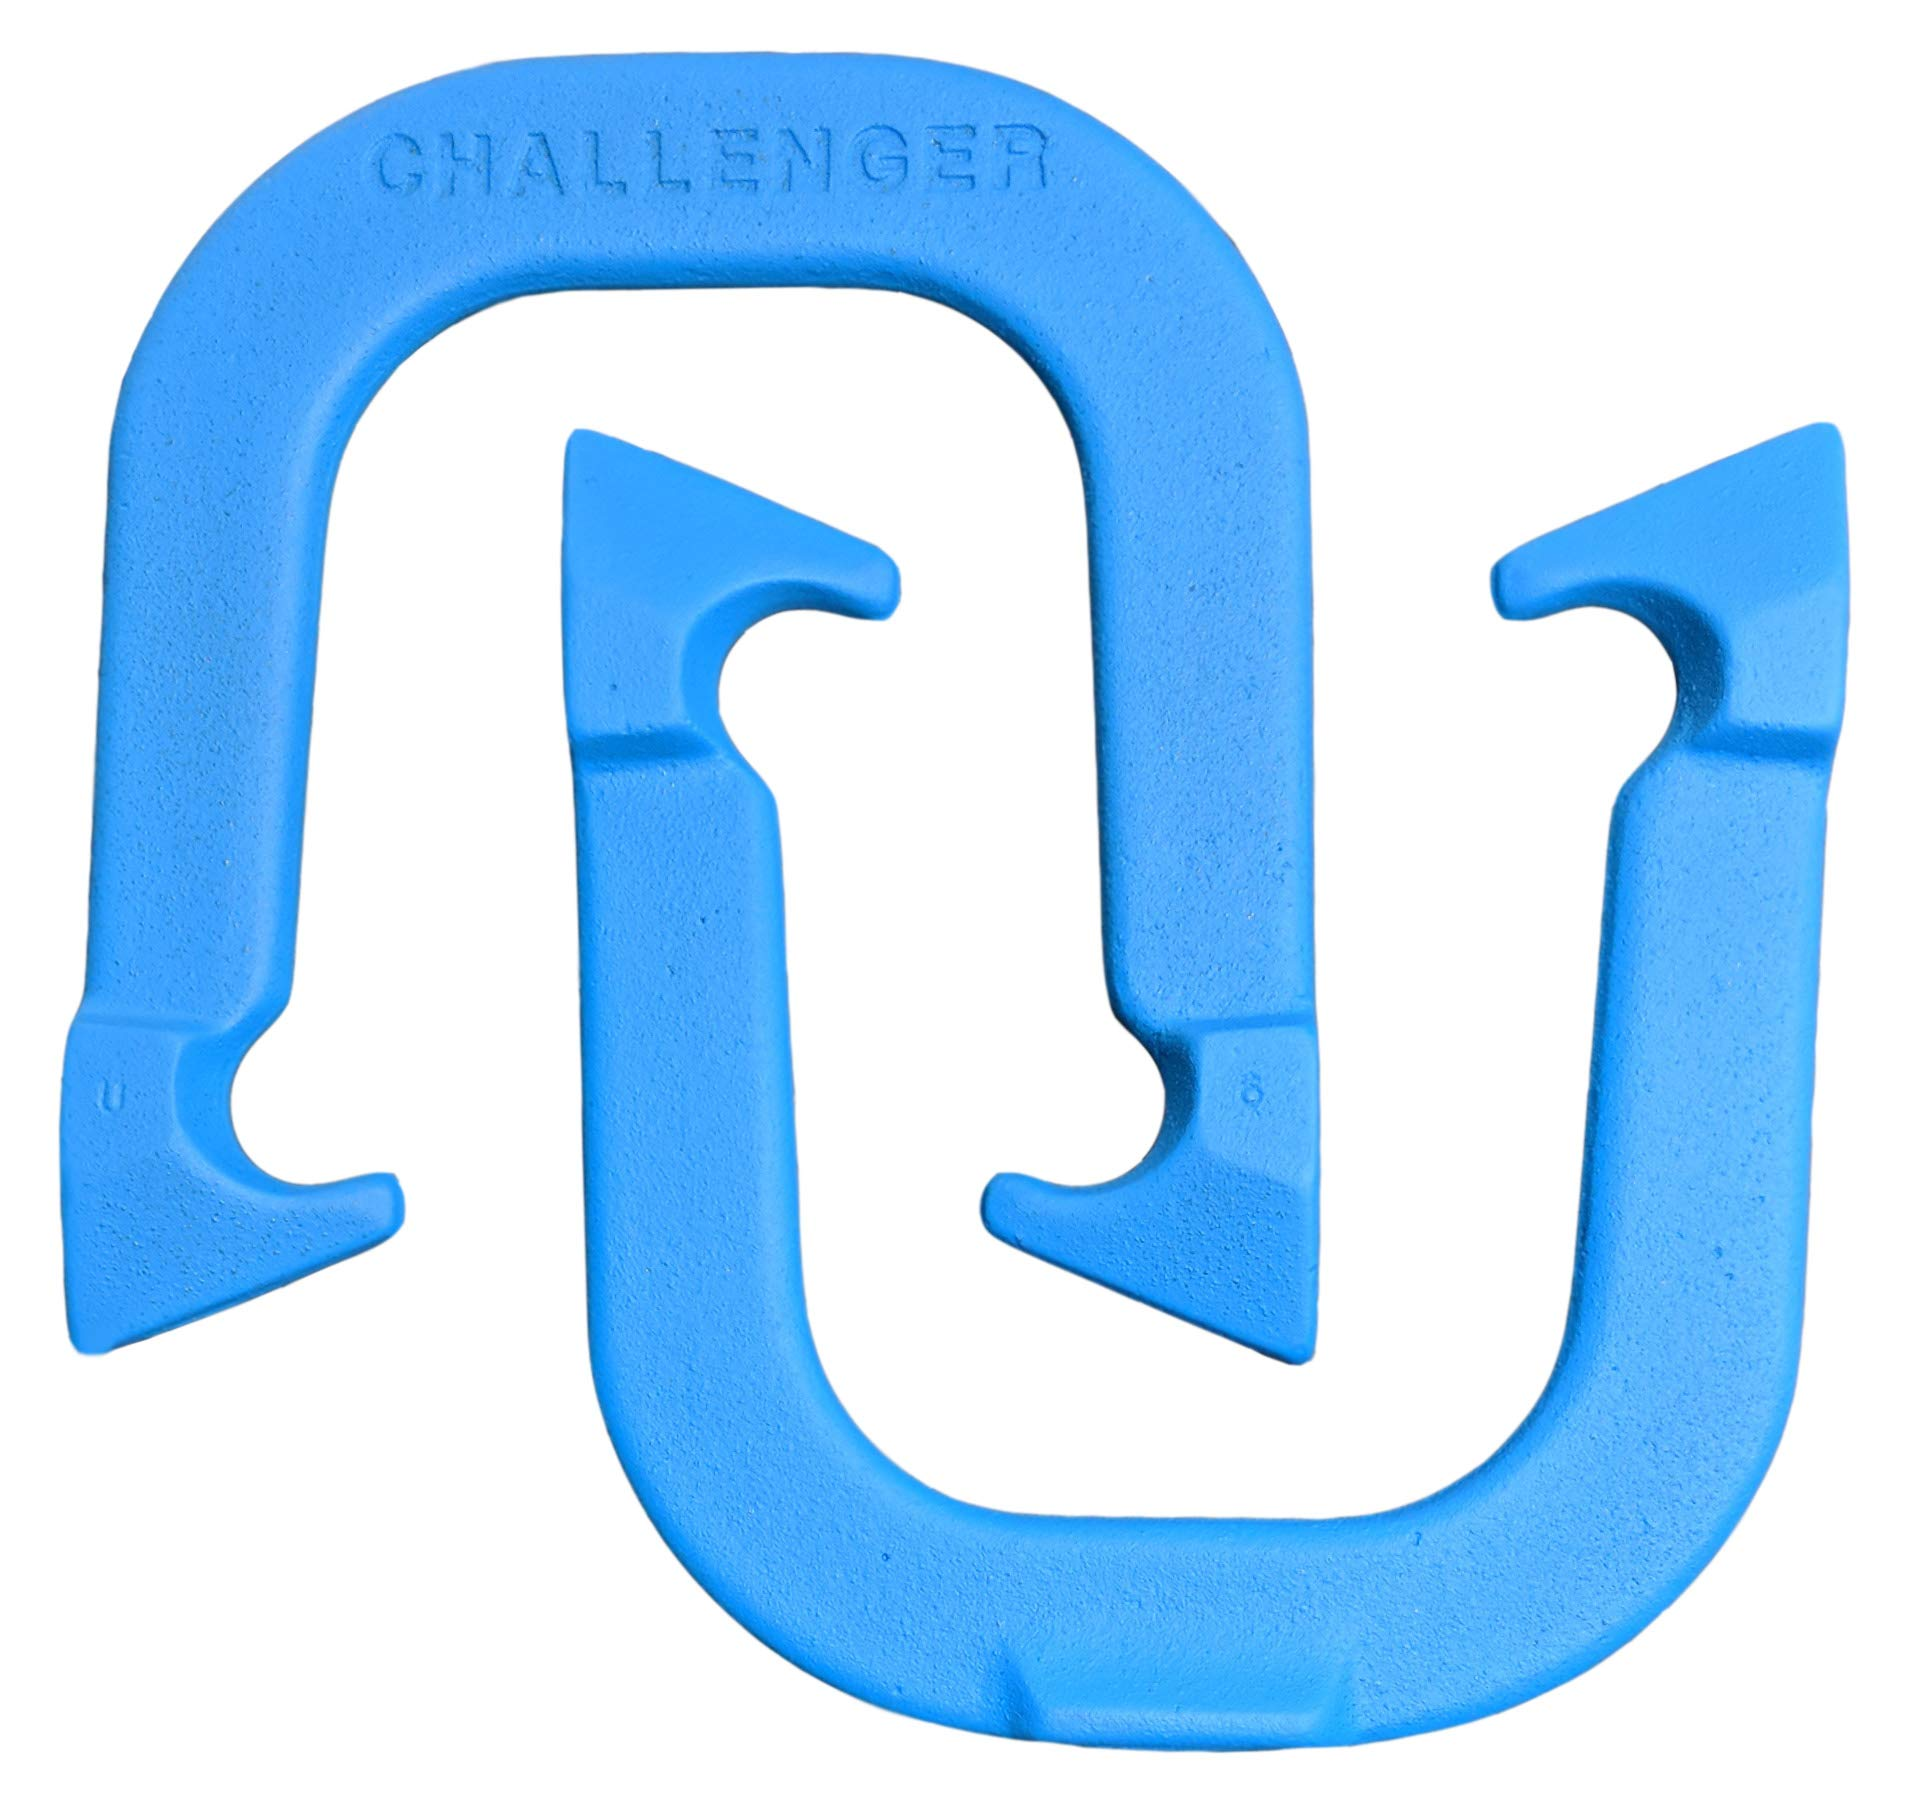 Challenger Professional Pitching Horseshoes- Made in USA! (Blue- Single Pair (2 Shoes))